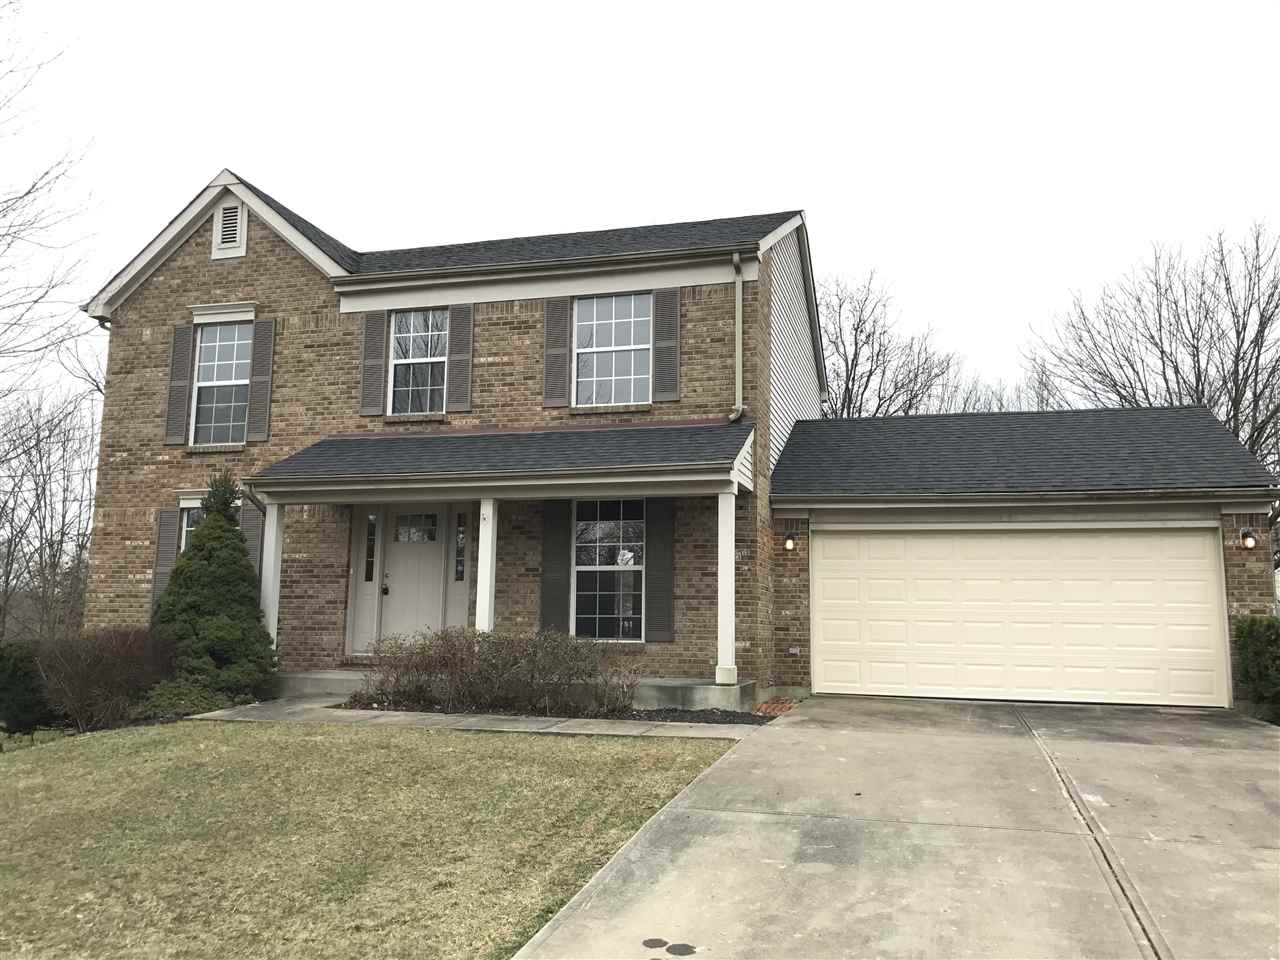 Photo 1 for 2401 Venetian Way Burlington, KY 41005